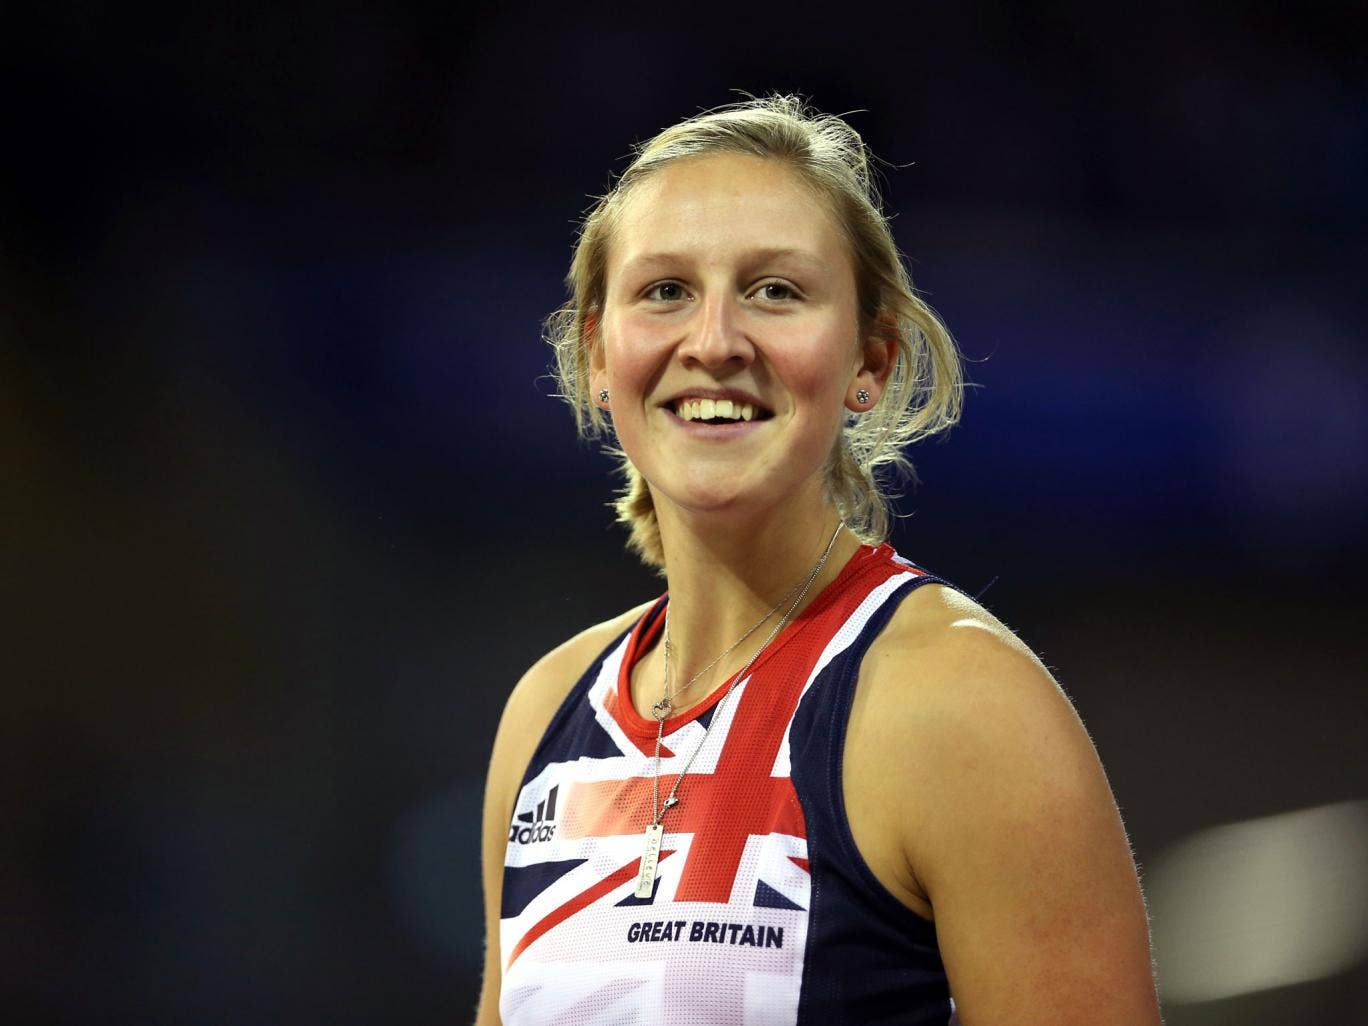 Holly Bleasdale endured a miserable, injury-hit 2013